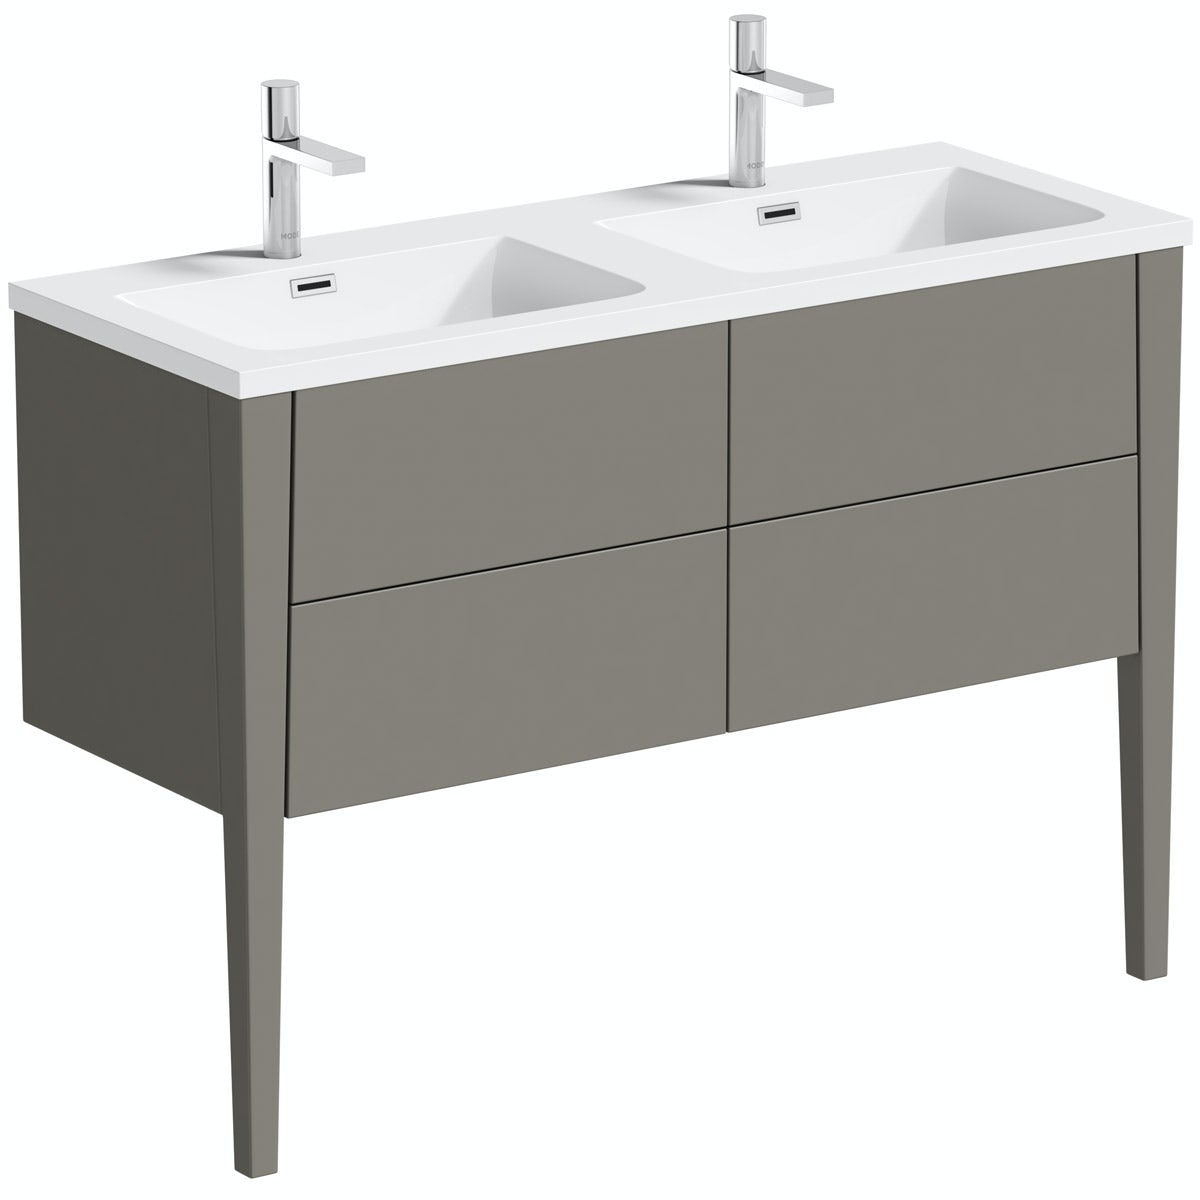 Mode Hale greystone matt double basin vanity unit 1200mm